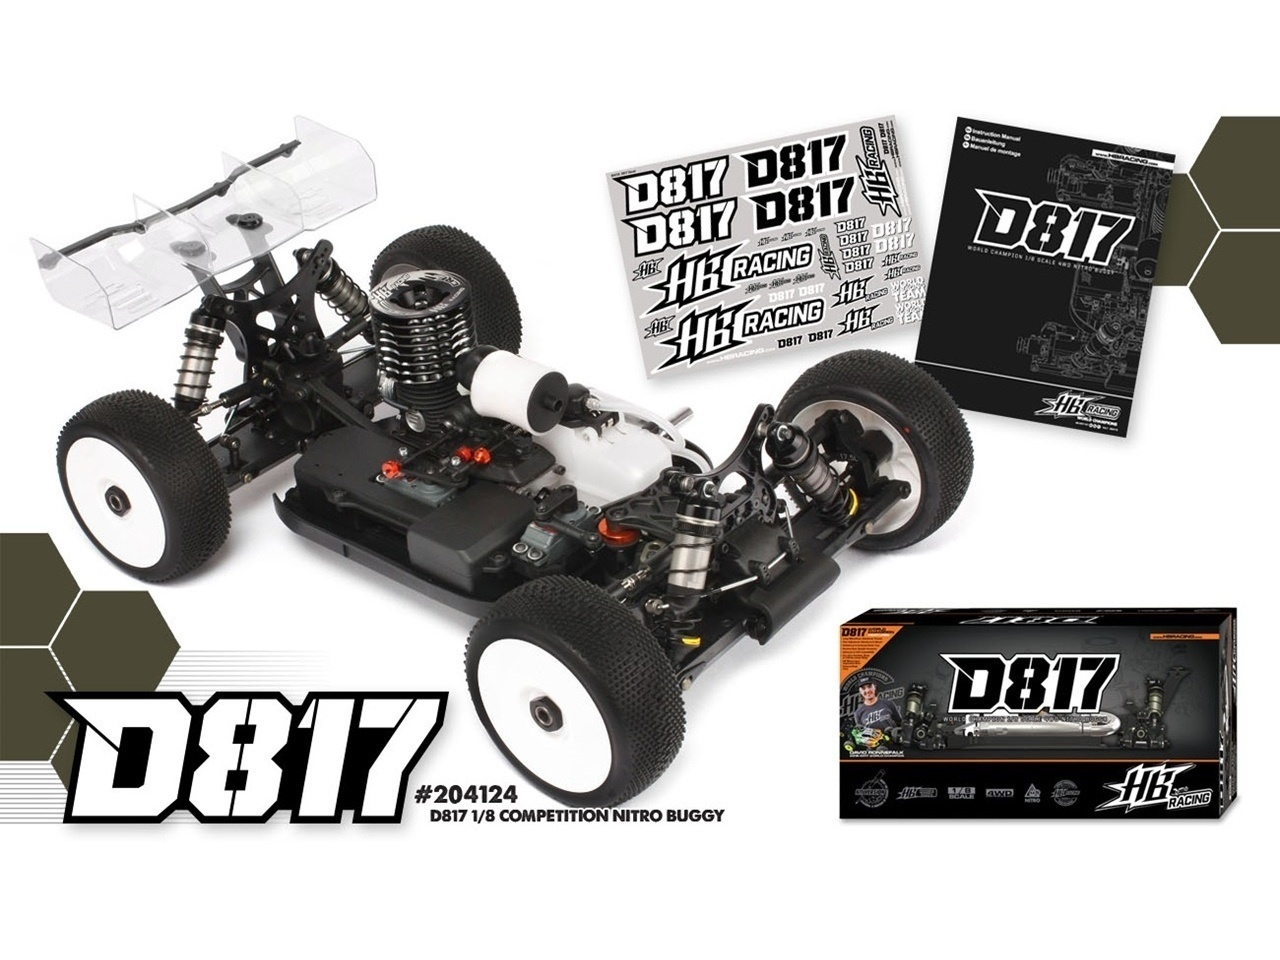 Hot Bodies D817 New 1/8 Competition Nitro Buggy HB204124